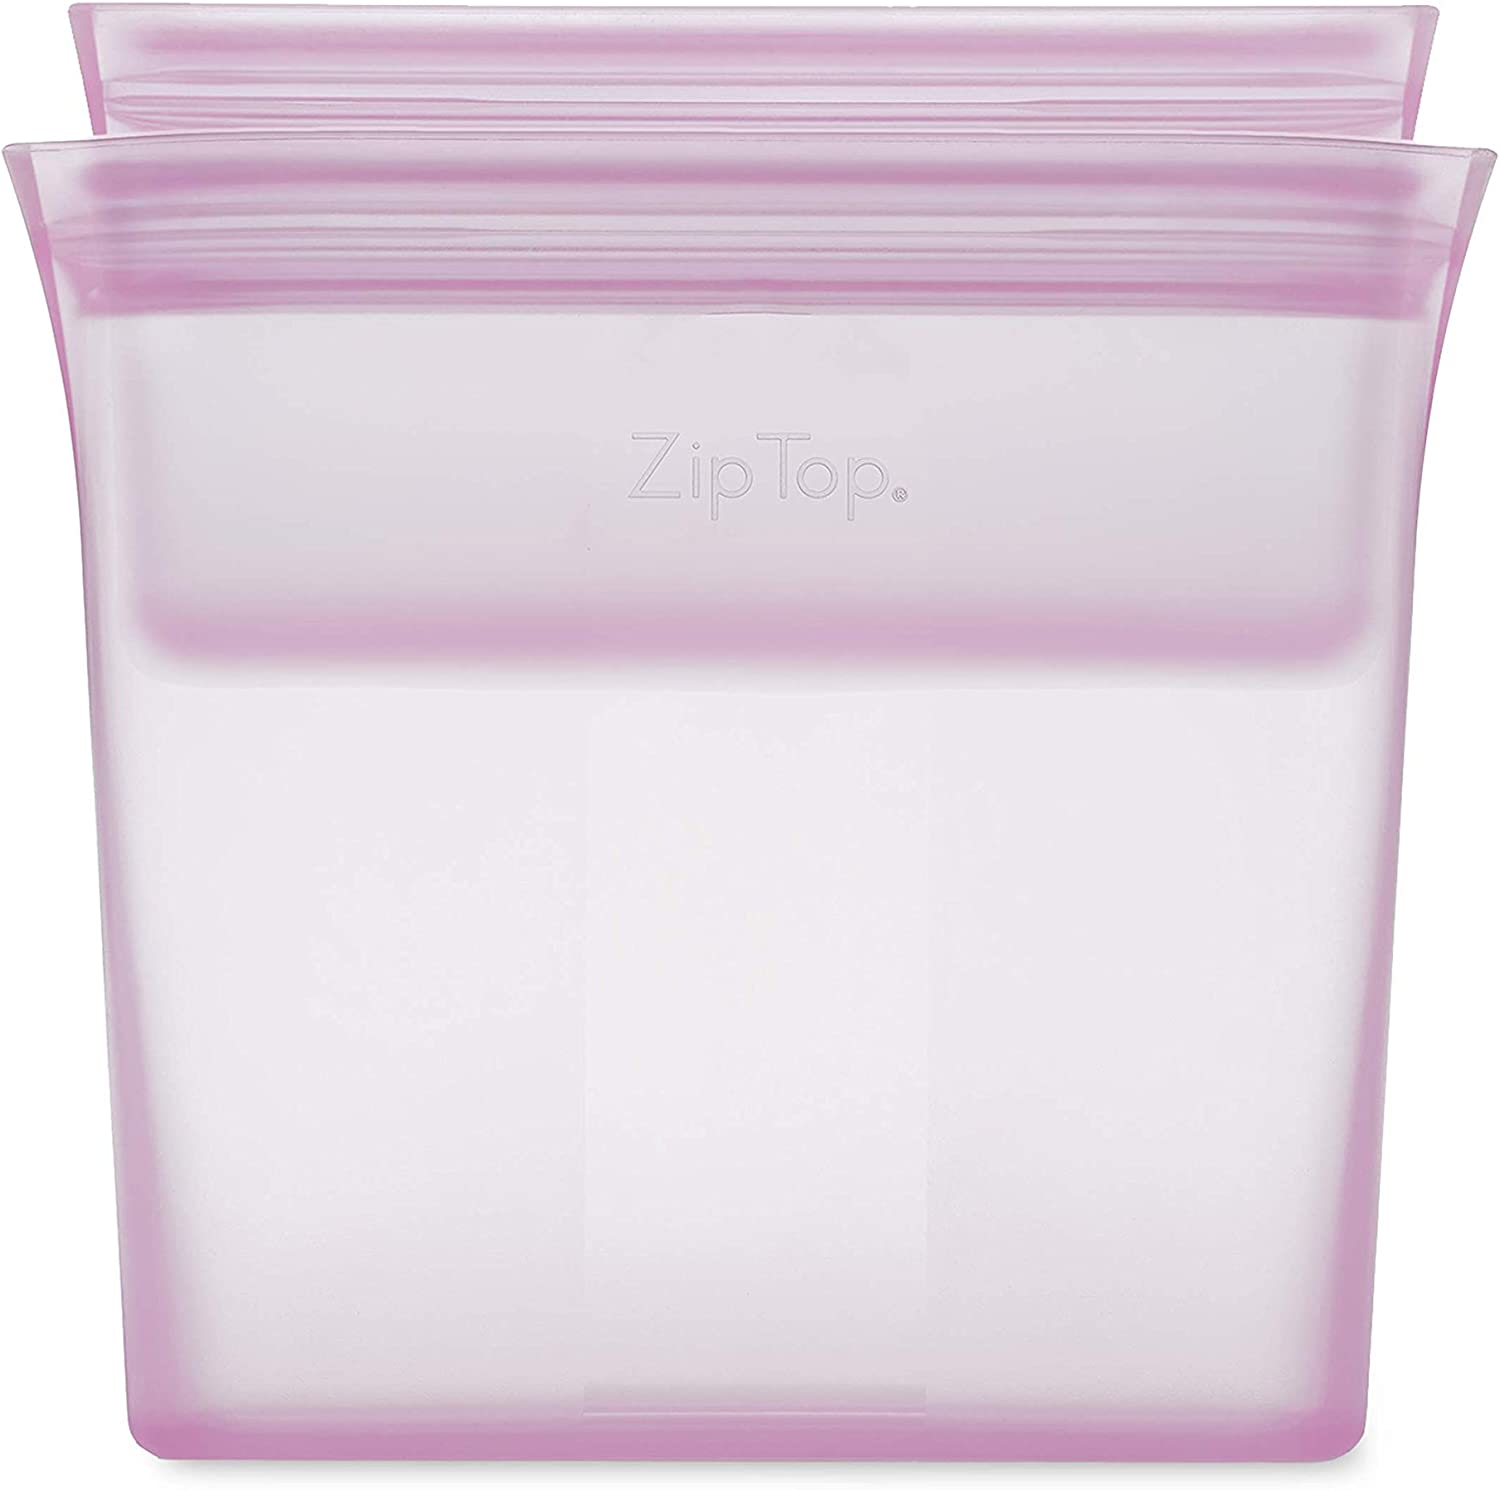 Zip Top Reusable 100% Silicone Food Storage Bags and Containers - 2 Bag Set - Sandwich & Snack Bags - Lavender